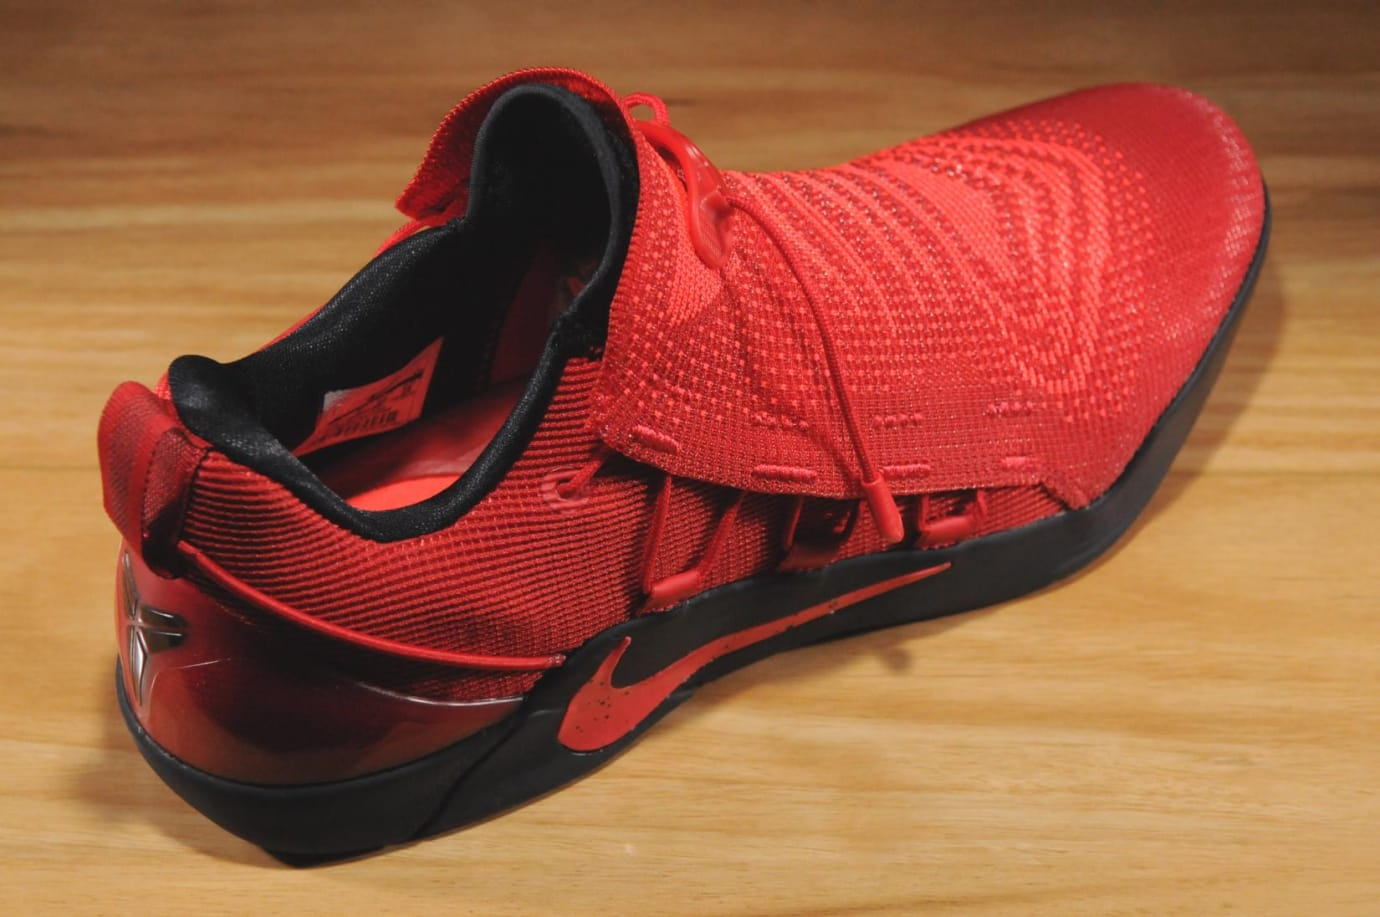 quality design 76858 bb9a8 Nike Kobe A.D. University Red Release Date Heel 882049-600